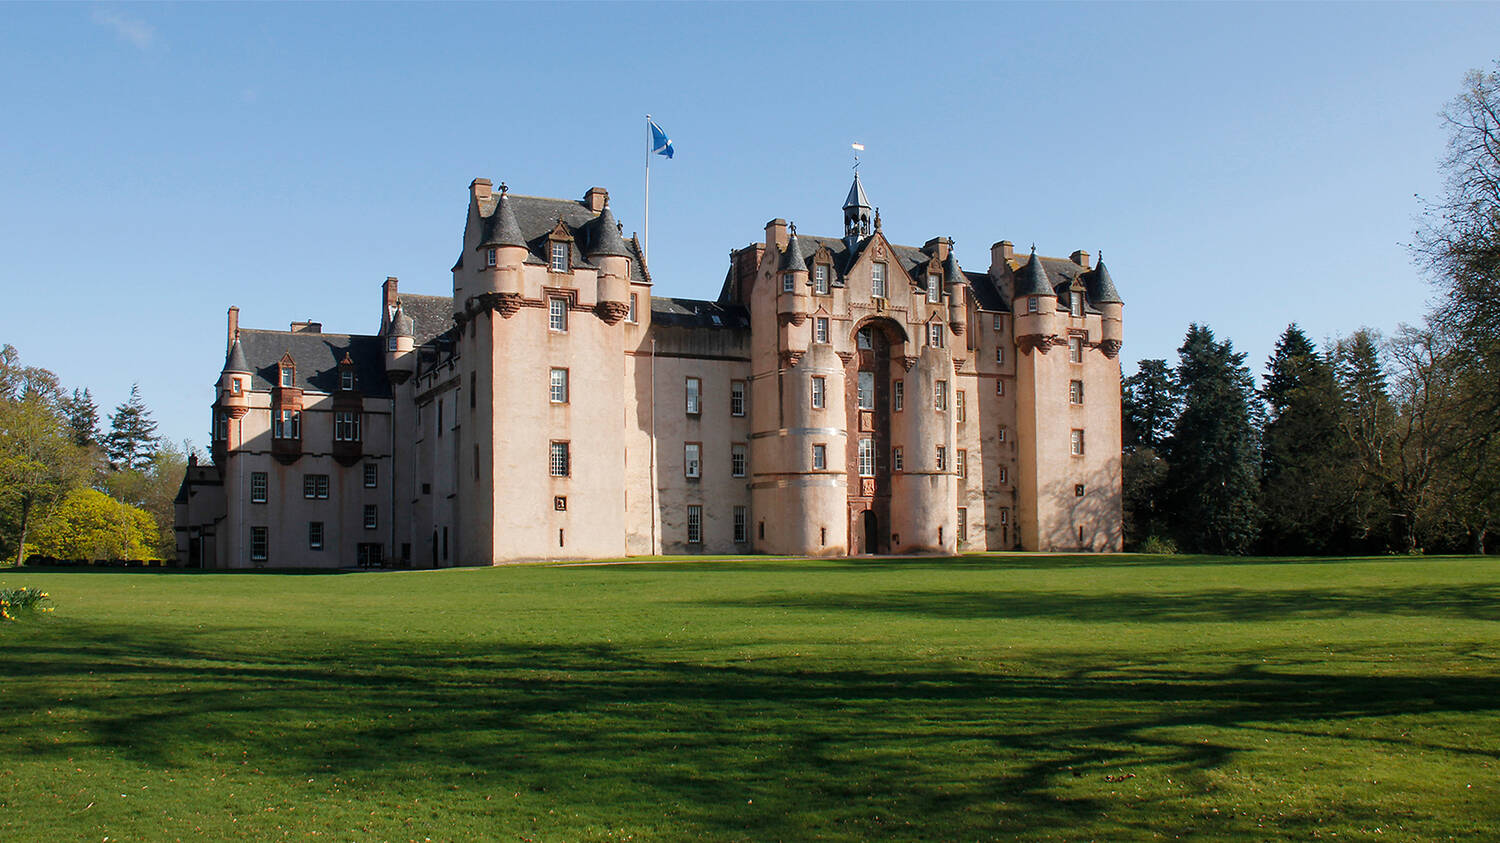 An exterior view of Fyvie Castle, seen from the lawn on a sunny day. Tall trees can be seen in the background behind the castle.